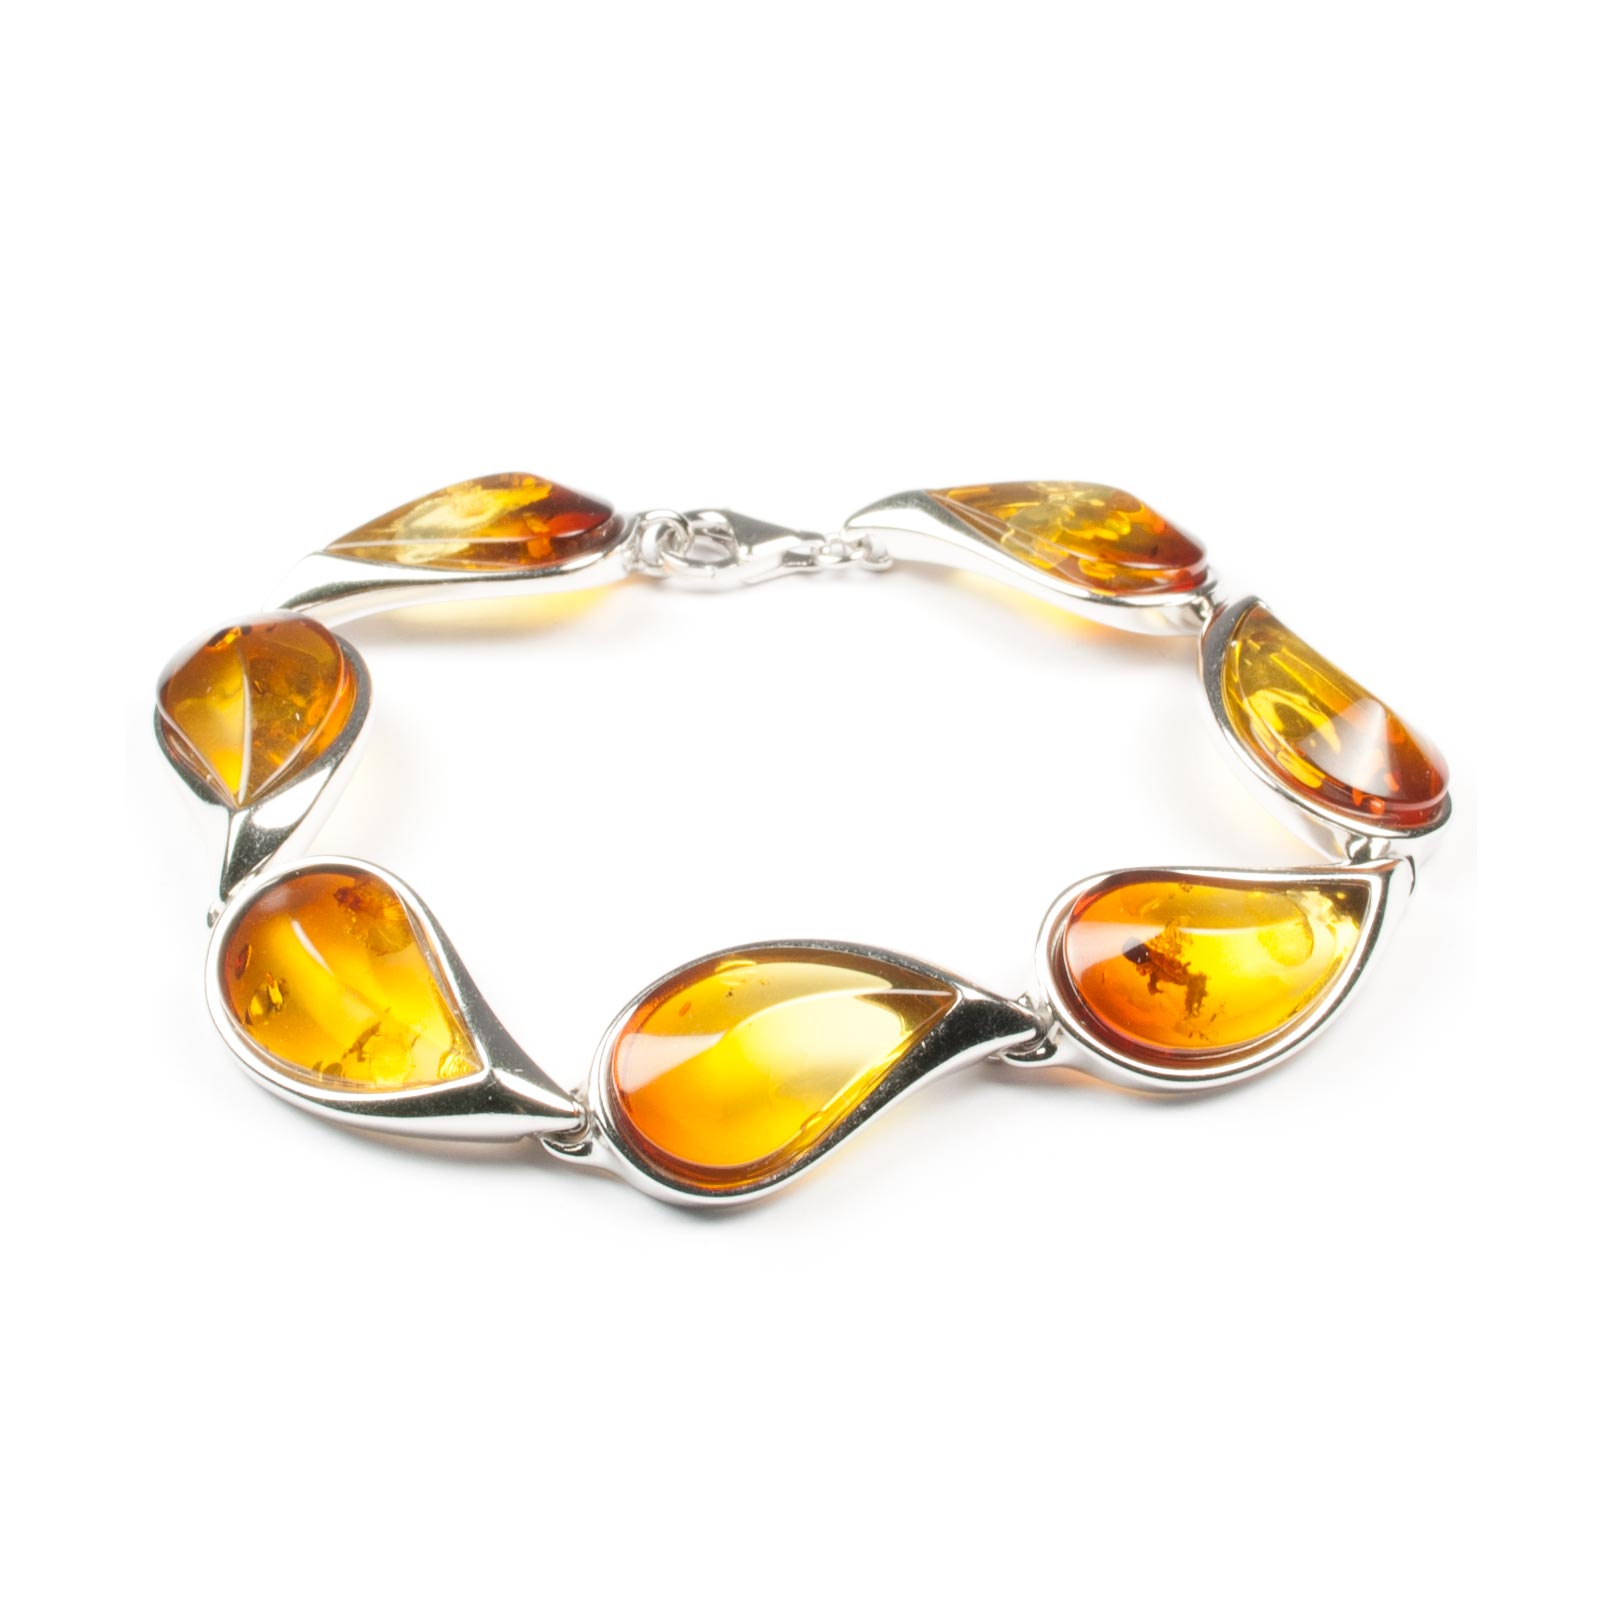 "Silver Bracelet with Natural Baltic Amber ""Venera II"" Gradient"